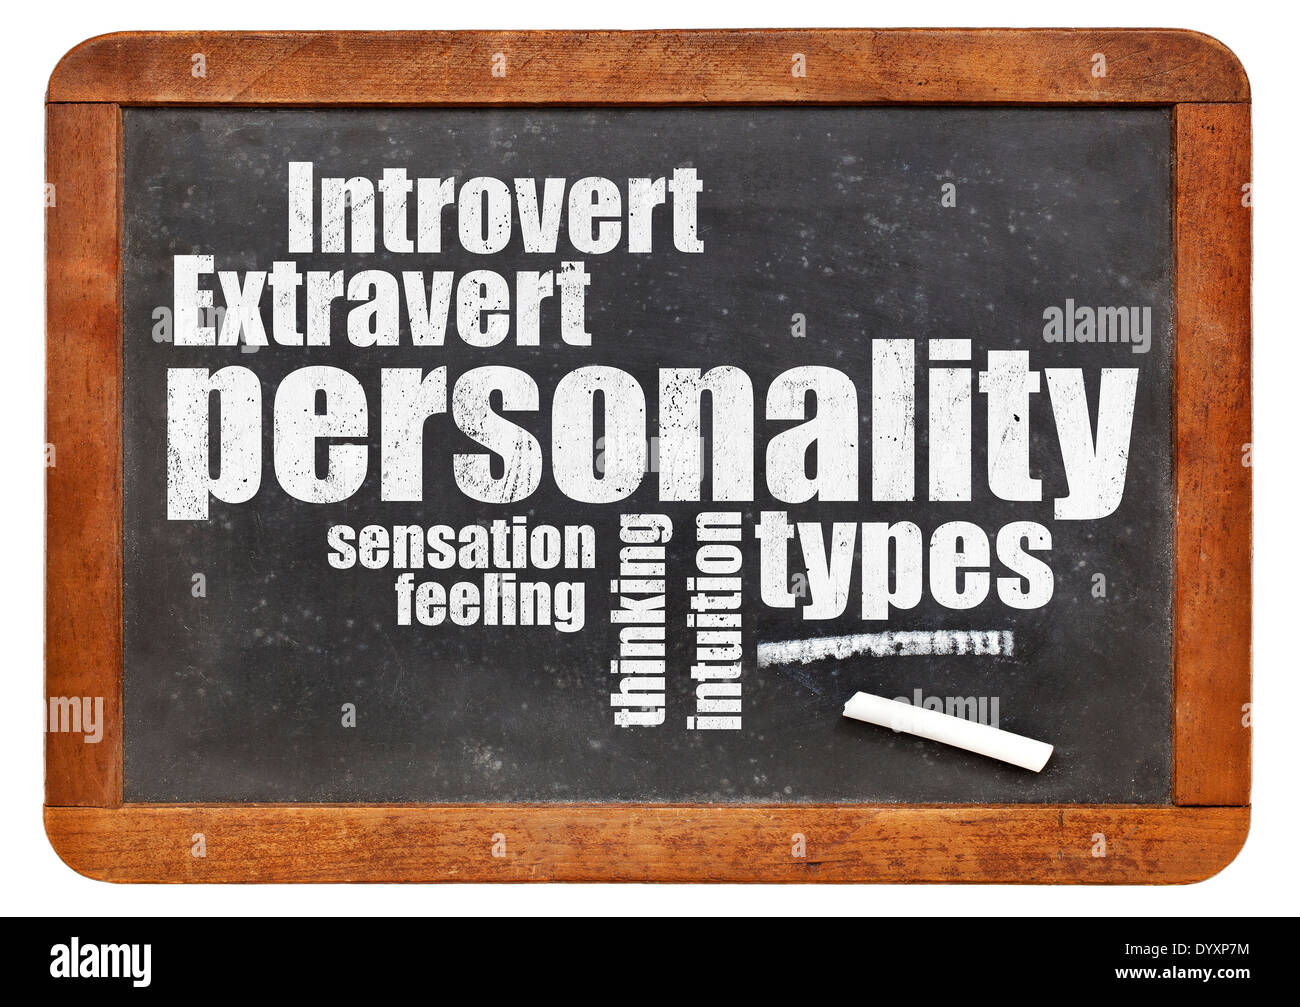 personality types word cloud on a vintage blackboard - Stock Image